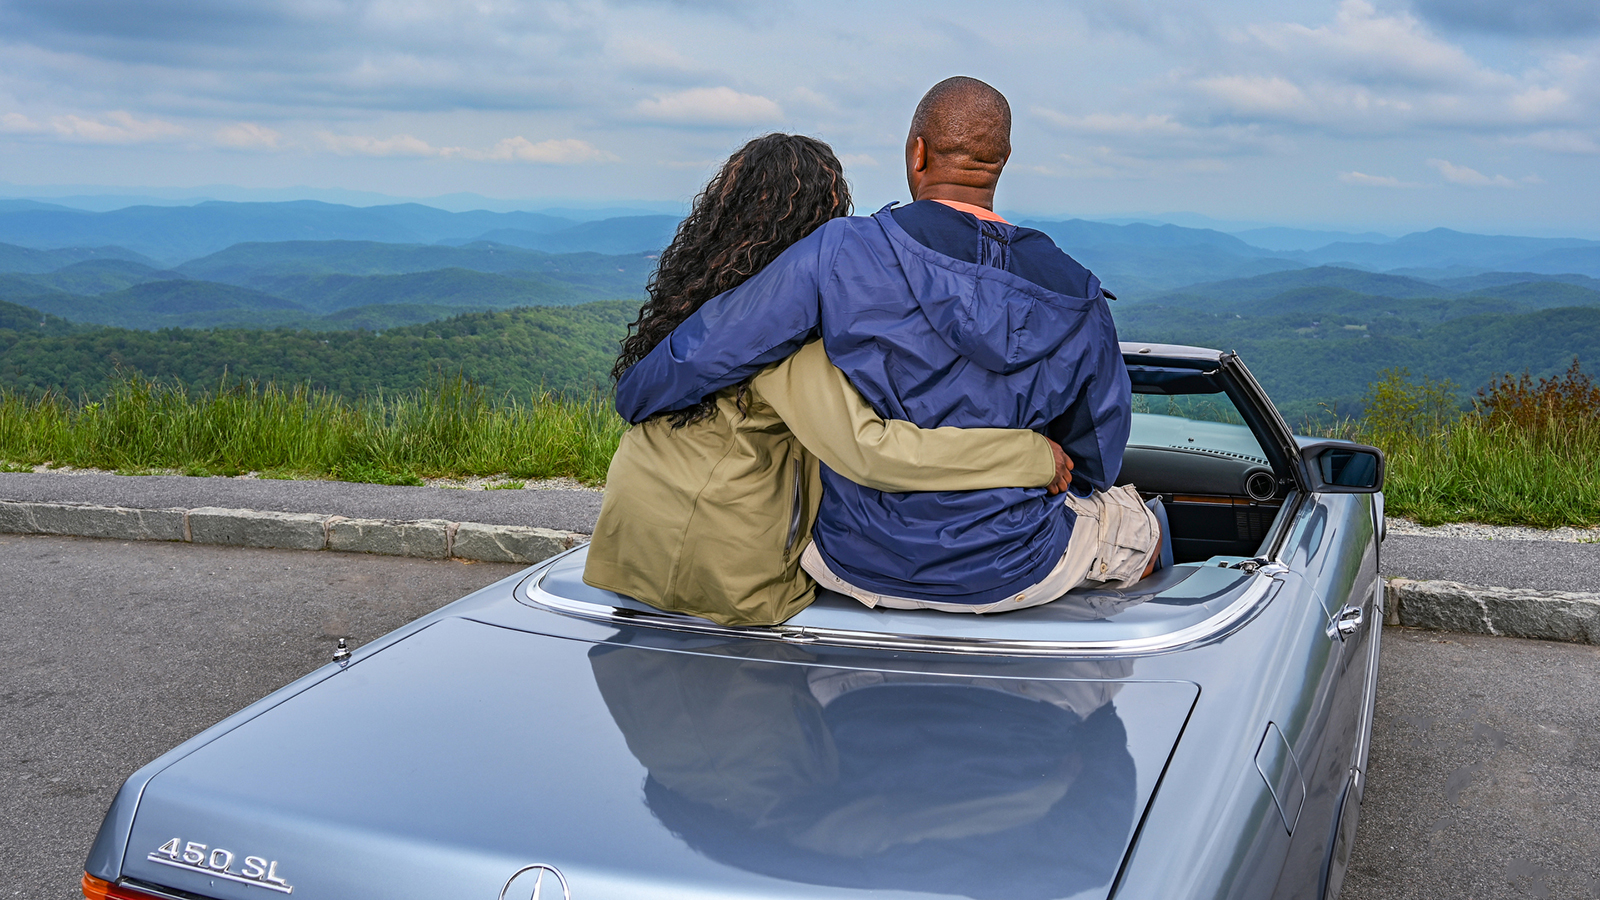 Thunder Hill Overlook view with couple in Mercedes convertible